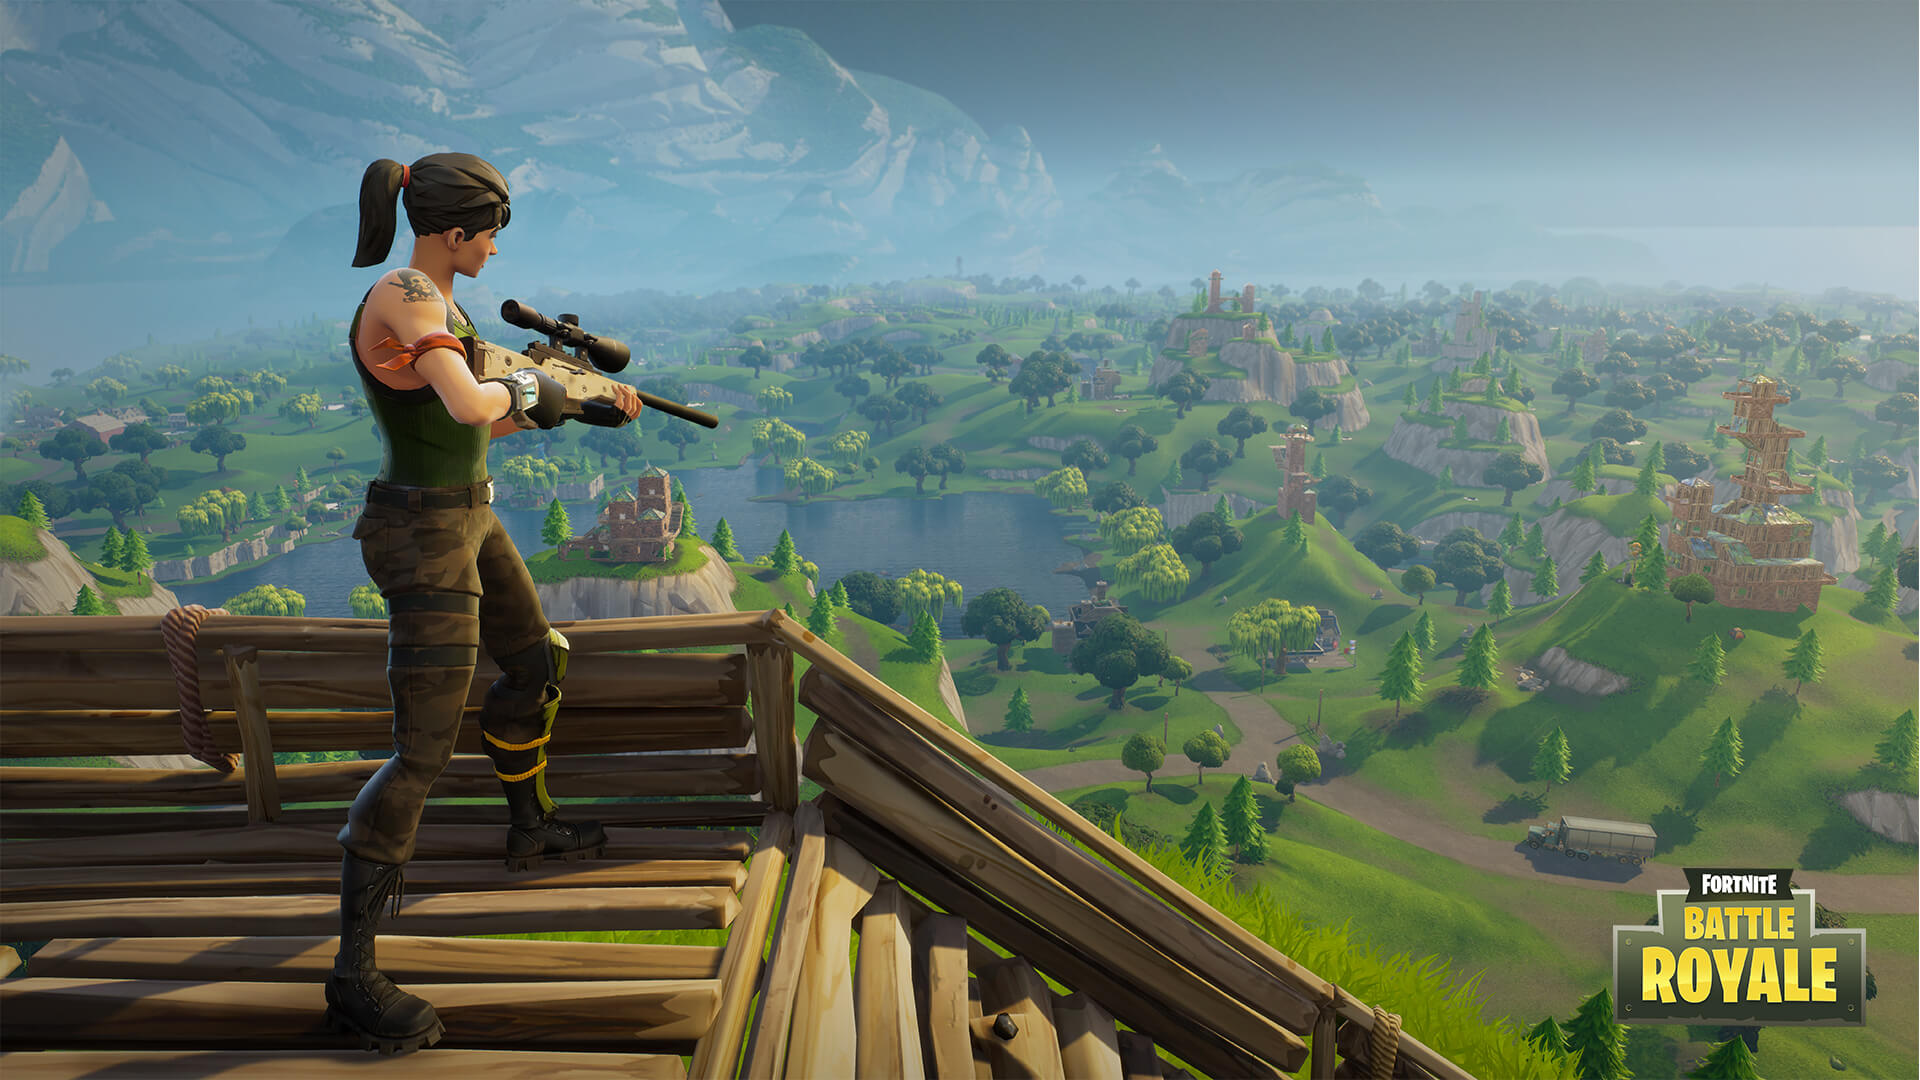 'Fortnite' gets Battle Royale patch with new inclusion